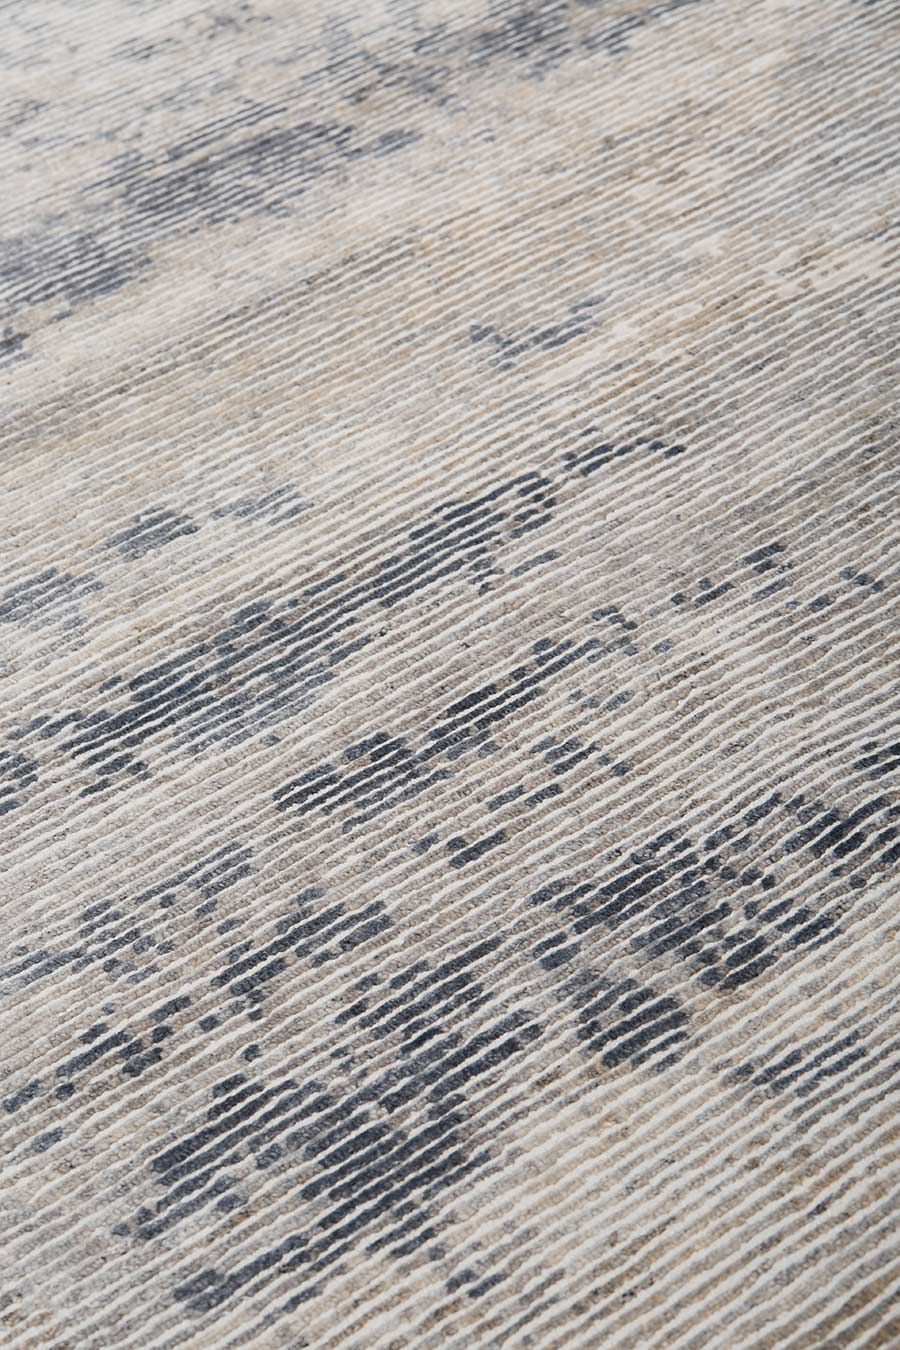 Detailed image of distressed Seamist rug in grey colour